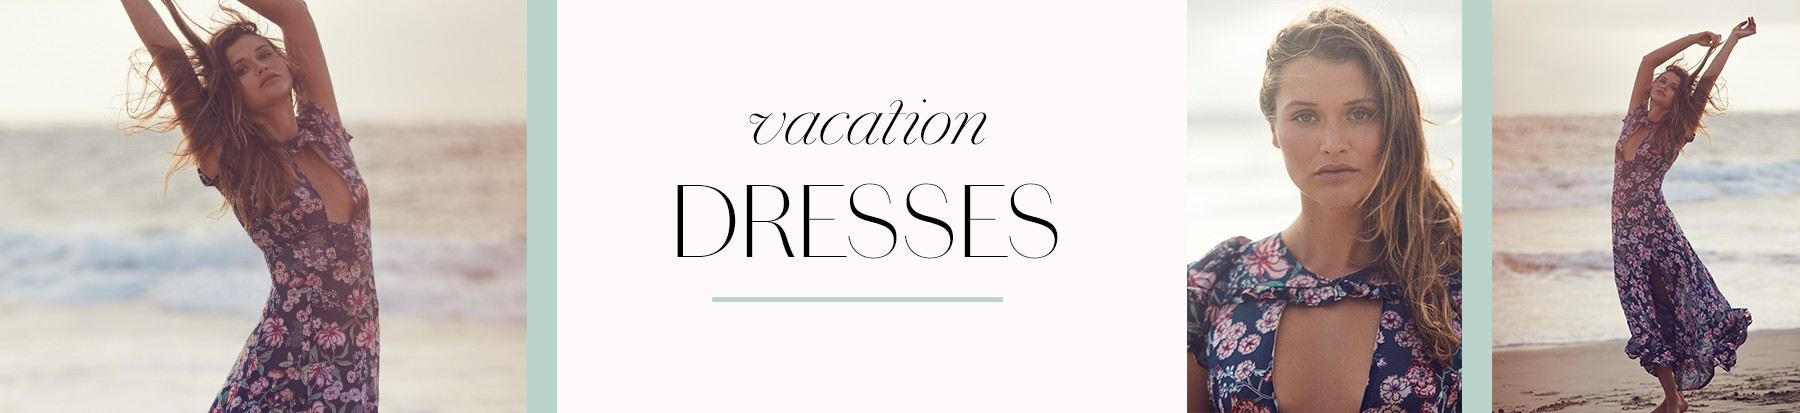 Vacation - Dresses